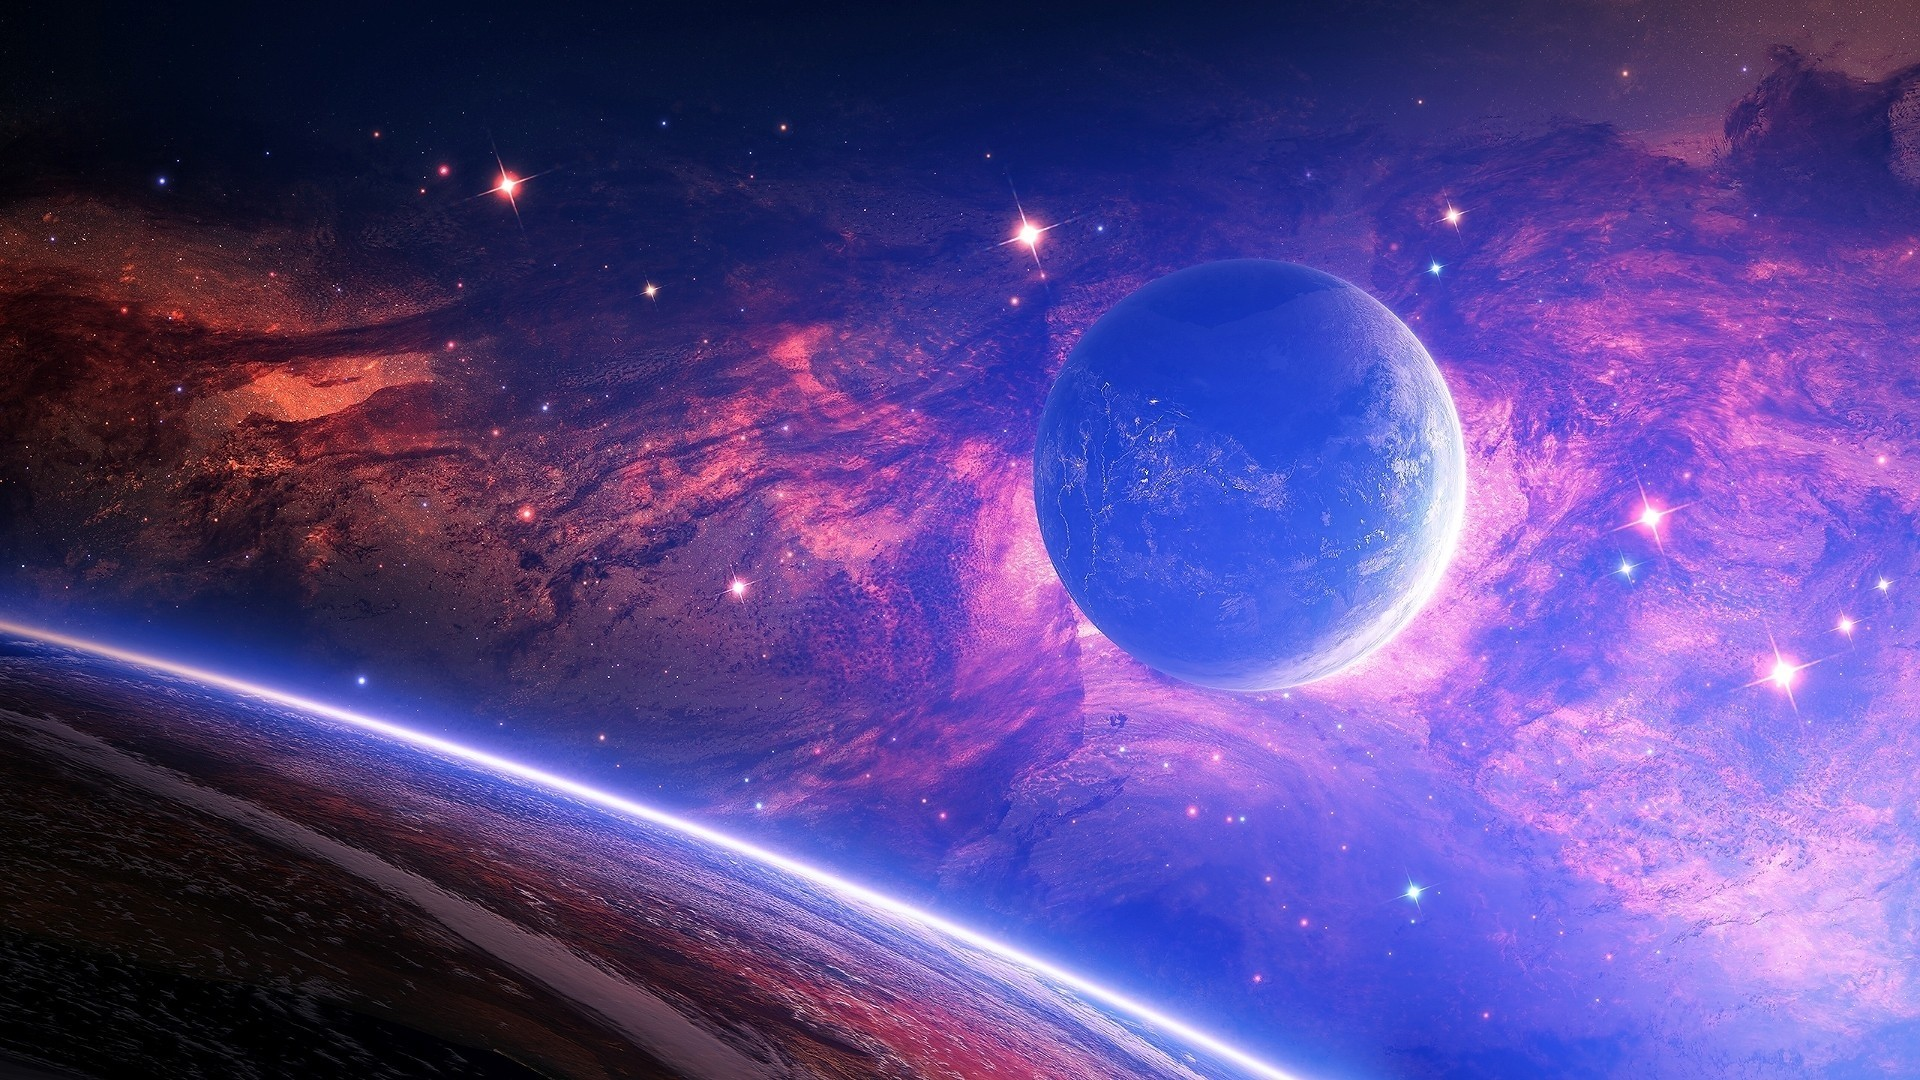 cool space background wallpapers 68 images